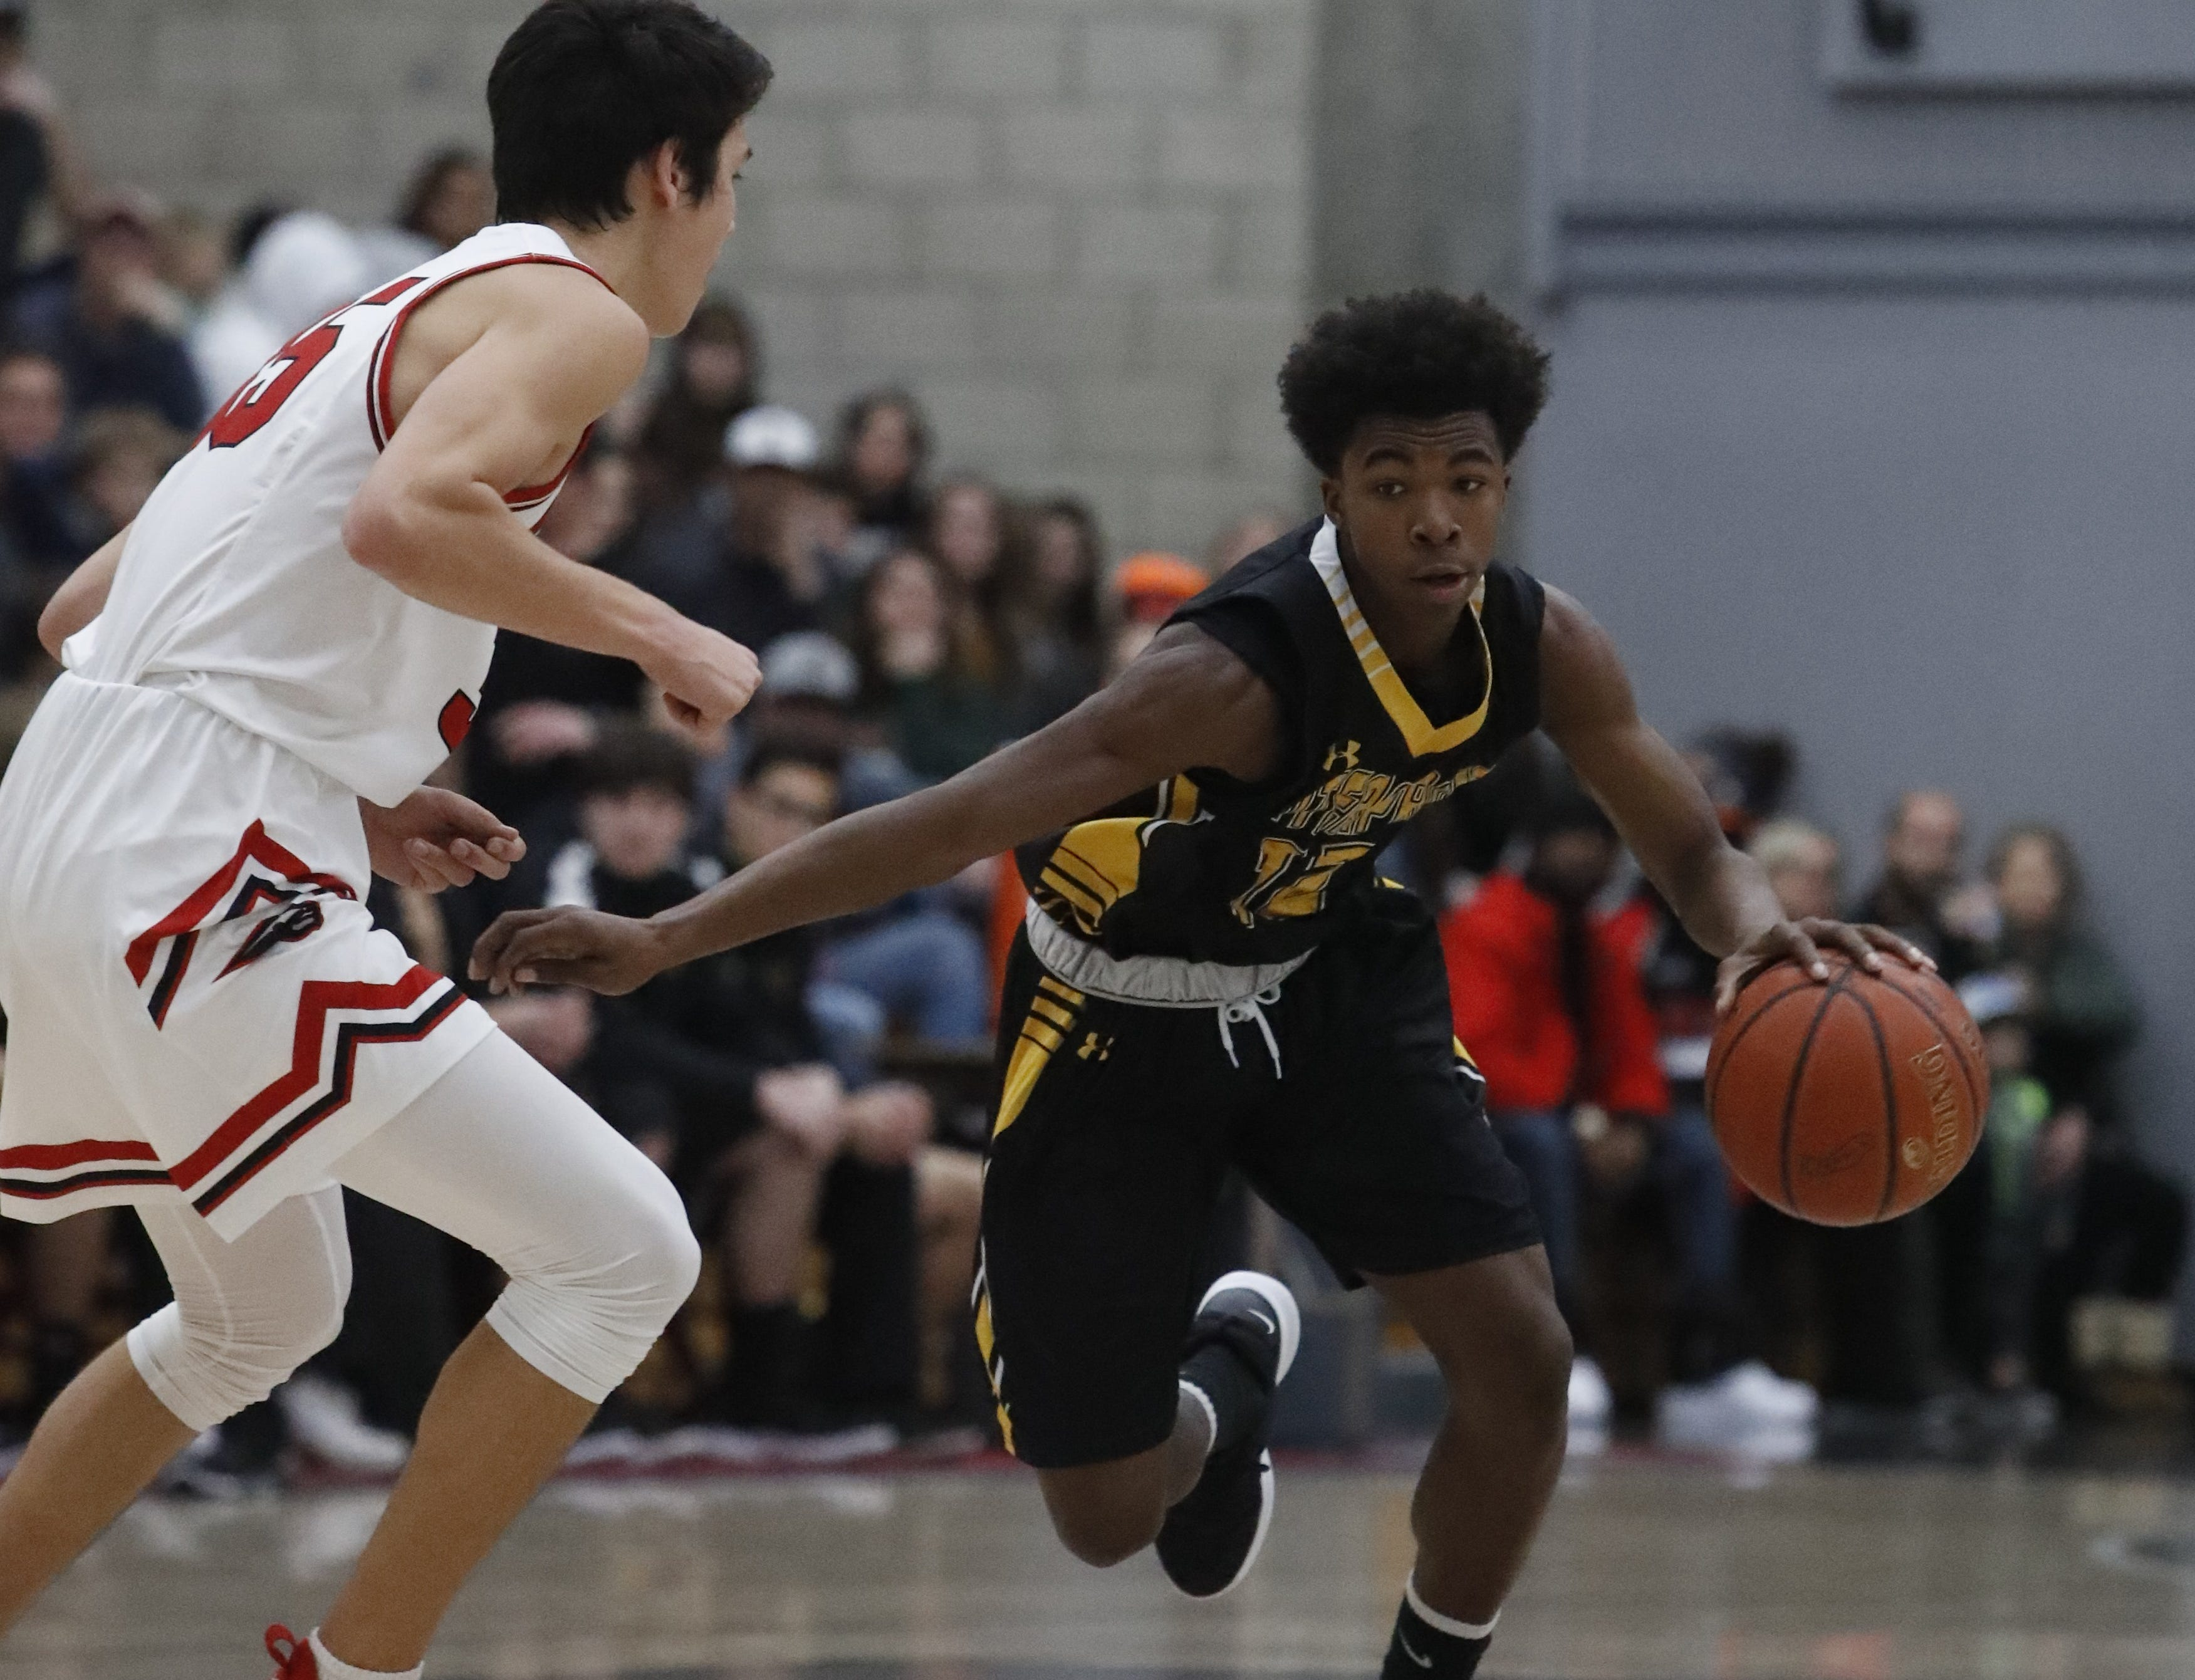 Enterprise freshman DeMarreya Lewis-Cooper tries to dribble around Foothill's Bekdoo Lewis during the Cougars' 55-50 win over the Hornets  in the Division III Northern Section semifinals on Wednesday, Feb. 20.